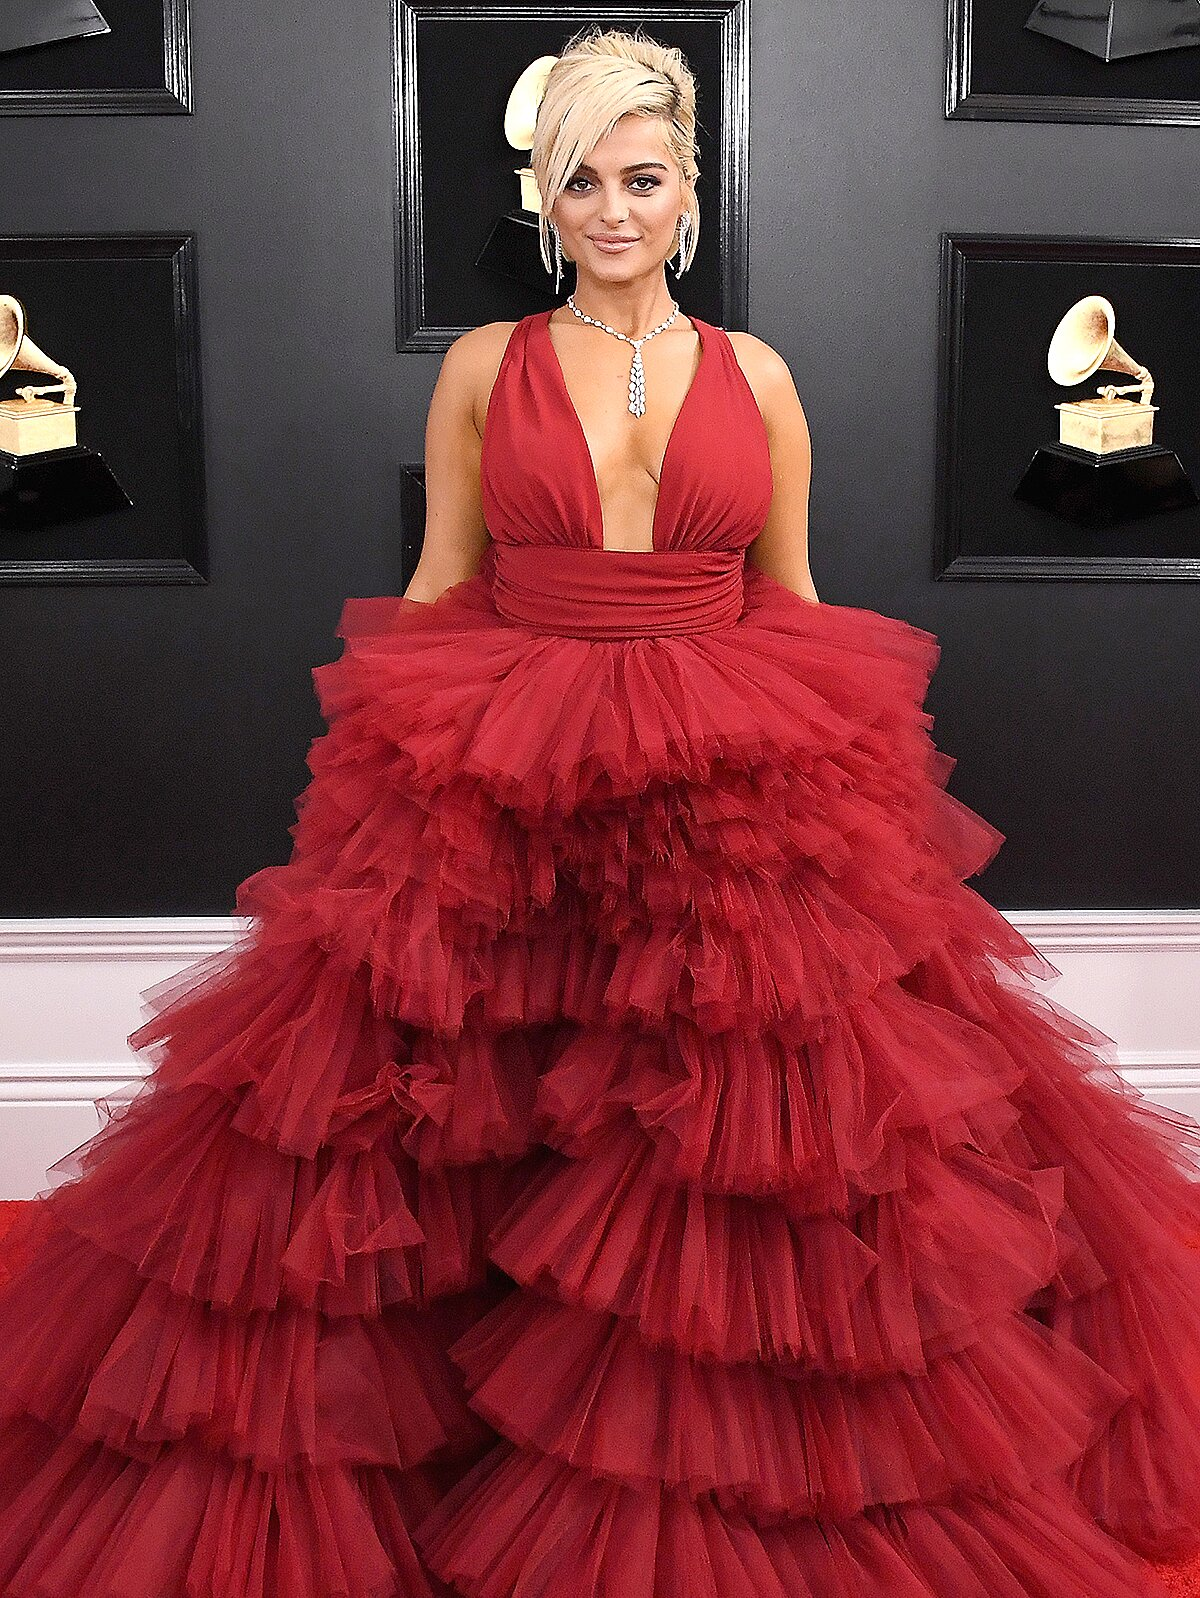 grammys 2019 best dressed celebrities of the night people com https people com style grammys 2019 best dressed looks